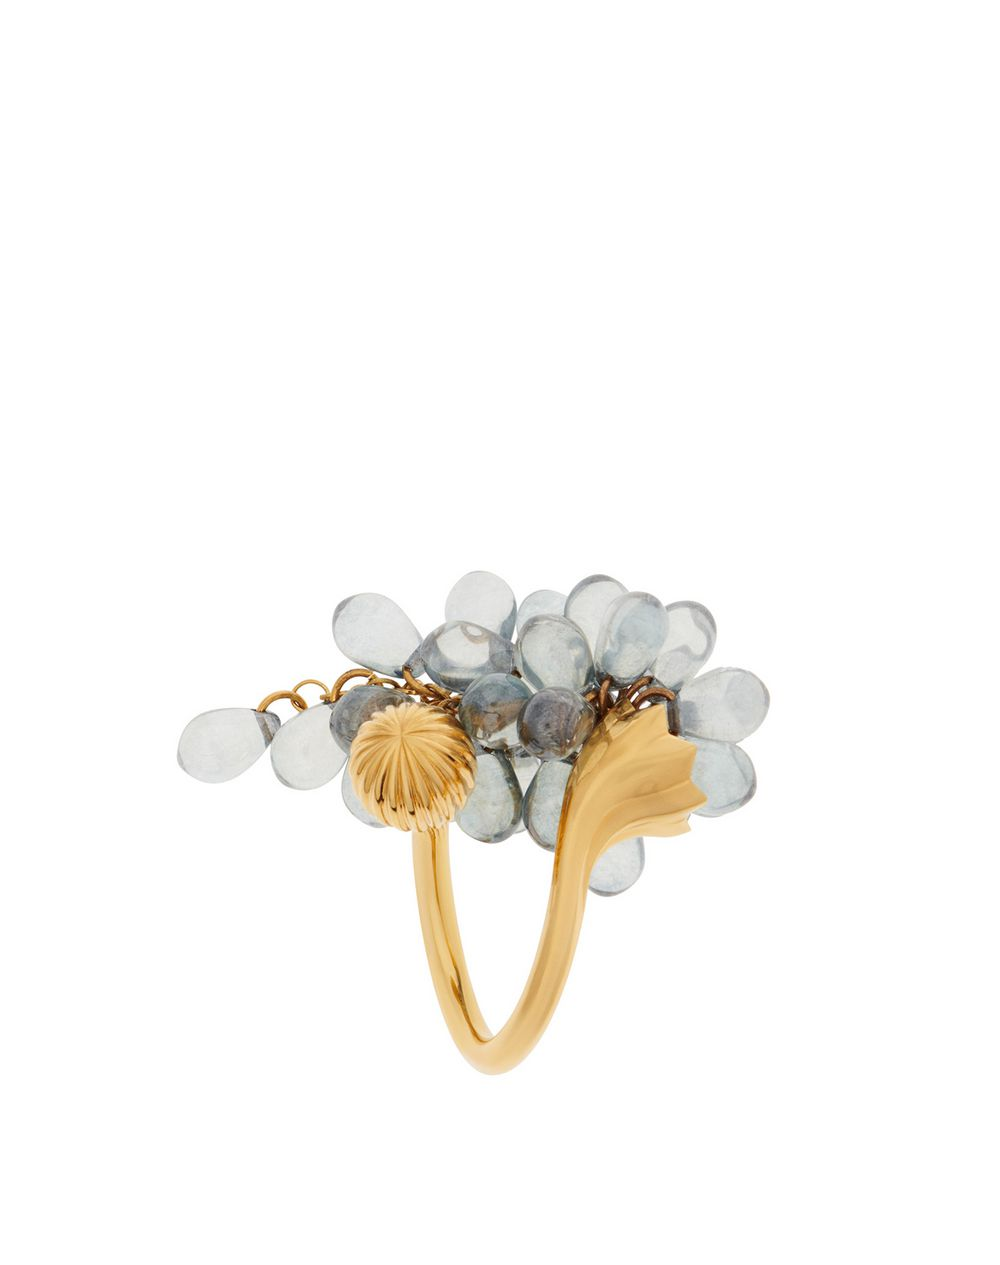 AUTUMN NIGHT RING - Lanvin